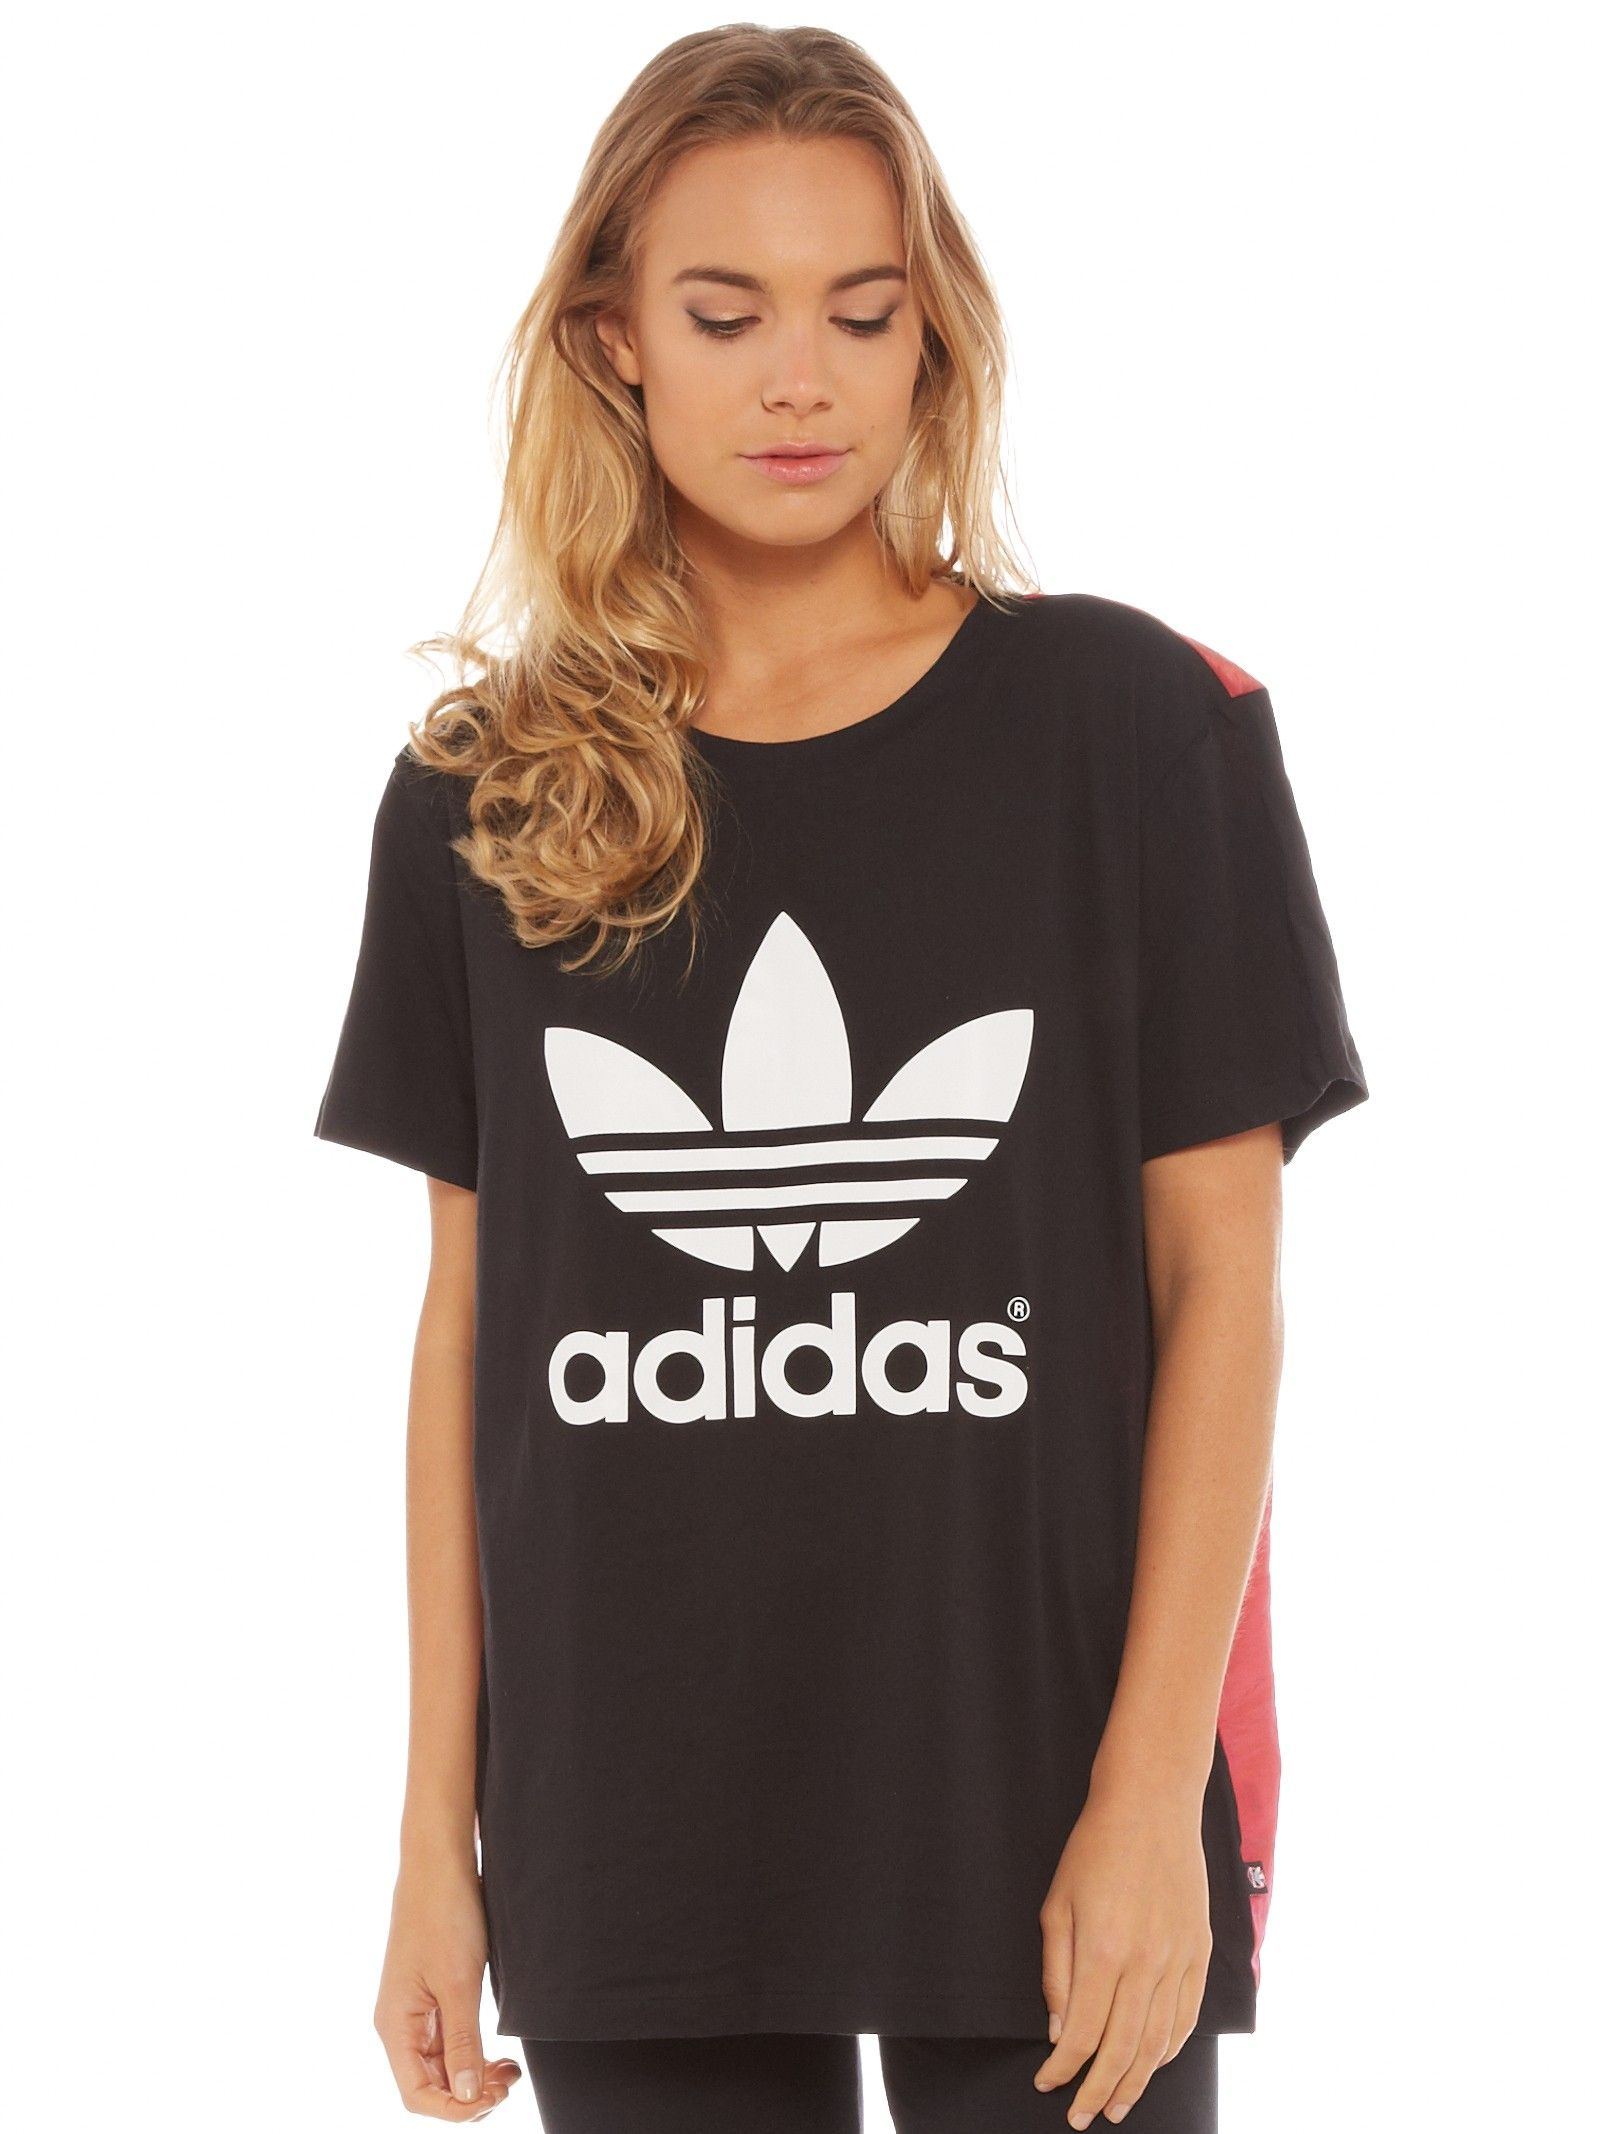 Rita Ora Space Shifter Logo Tee in Black and Red